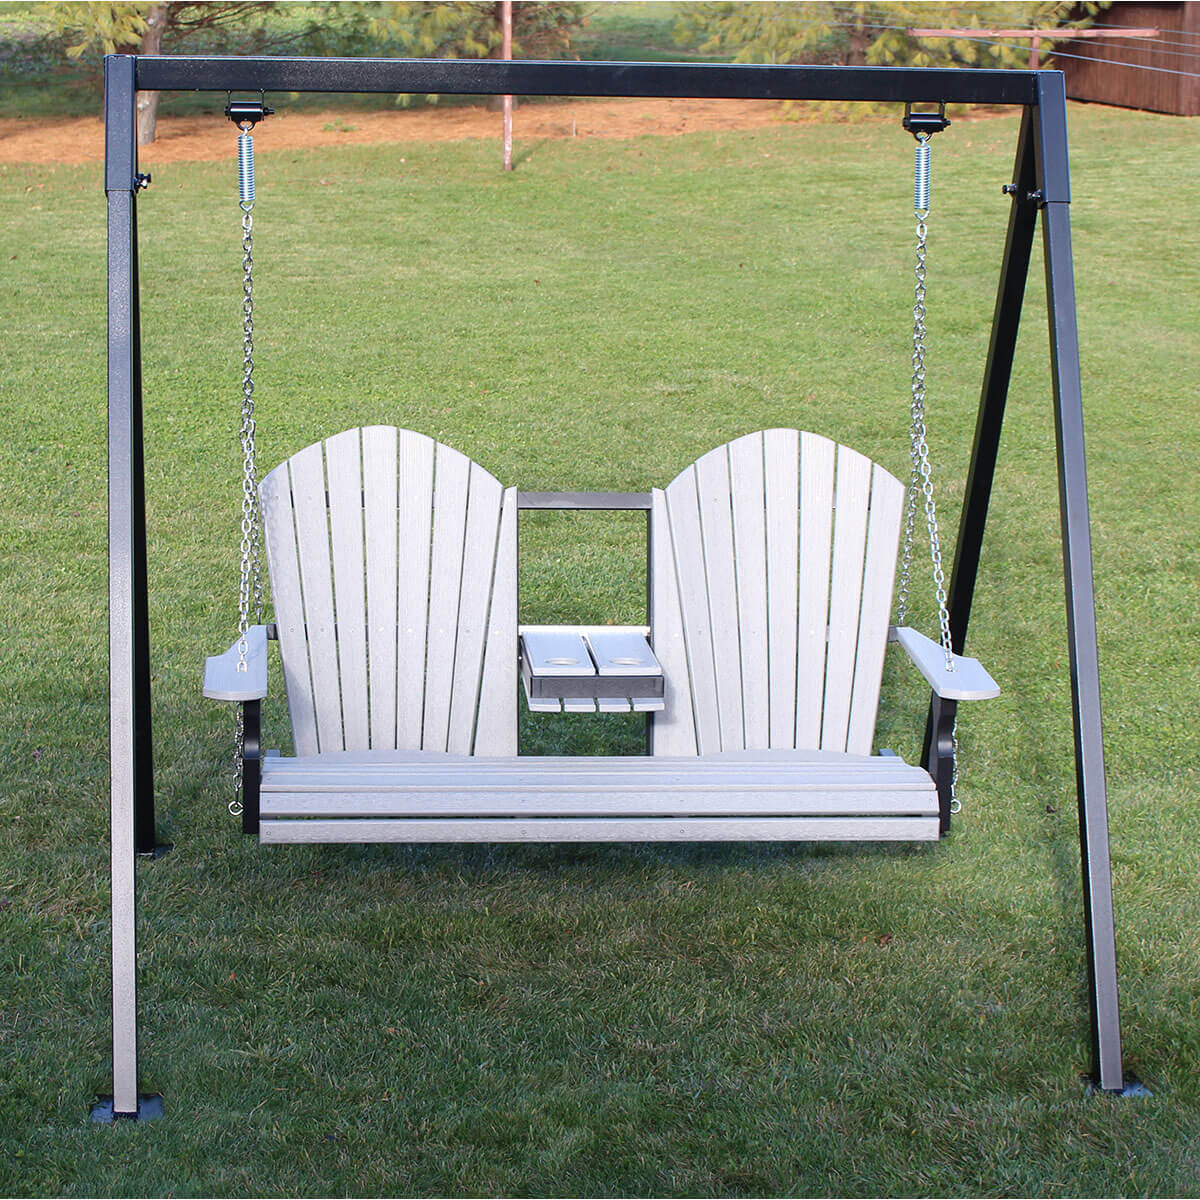 5 Foot Classic Swing with Console and Metal Swing Frame